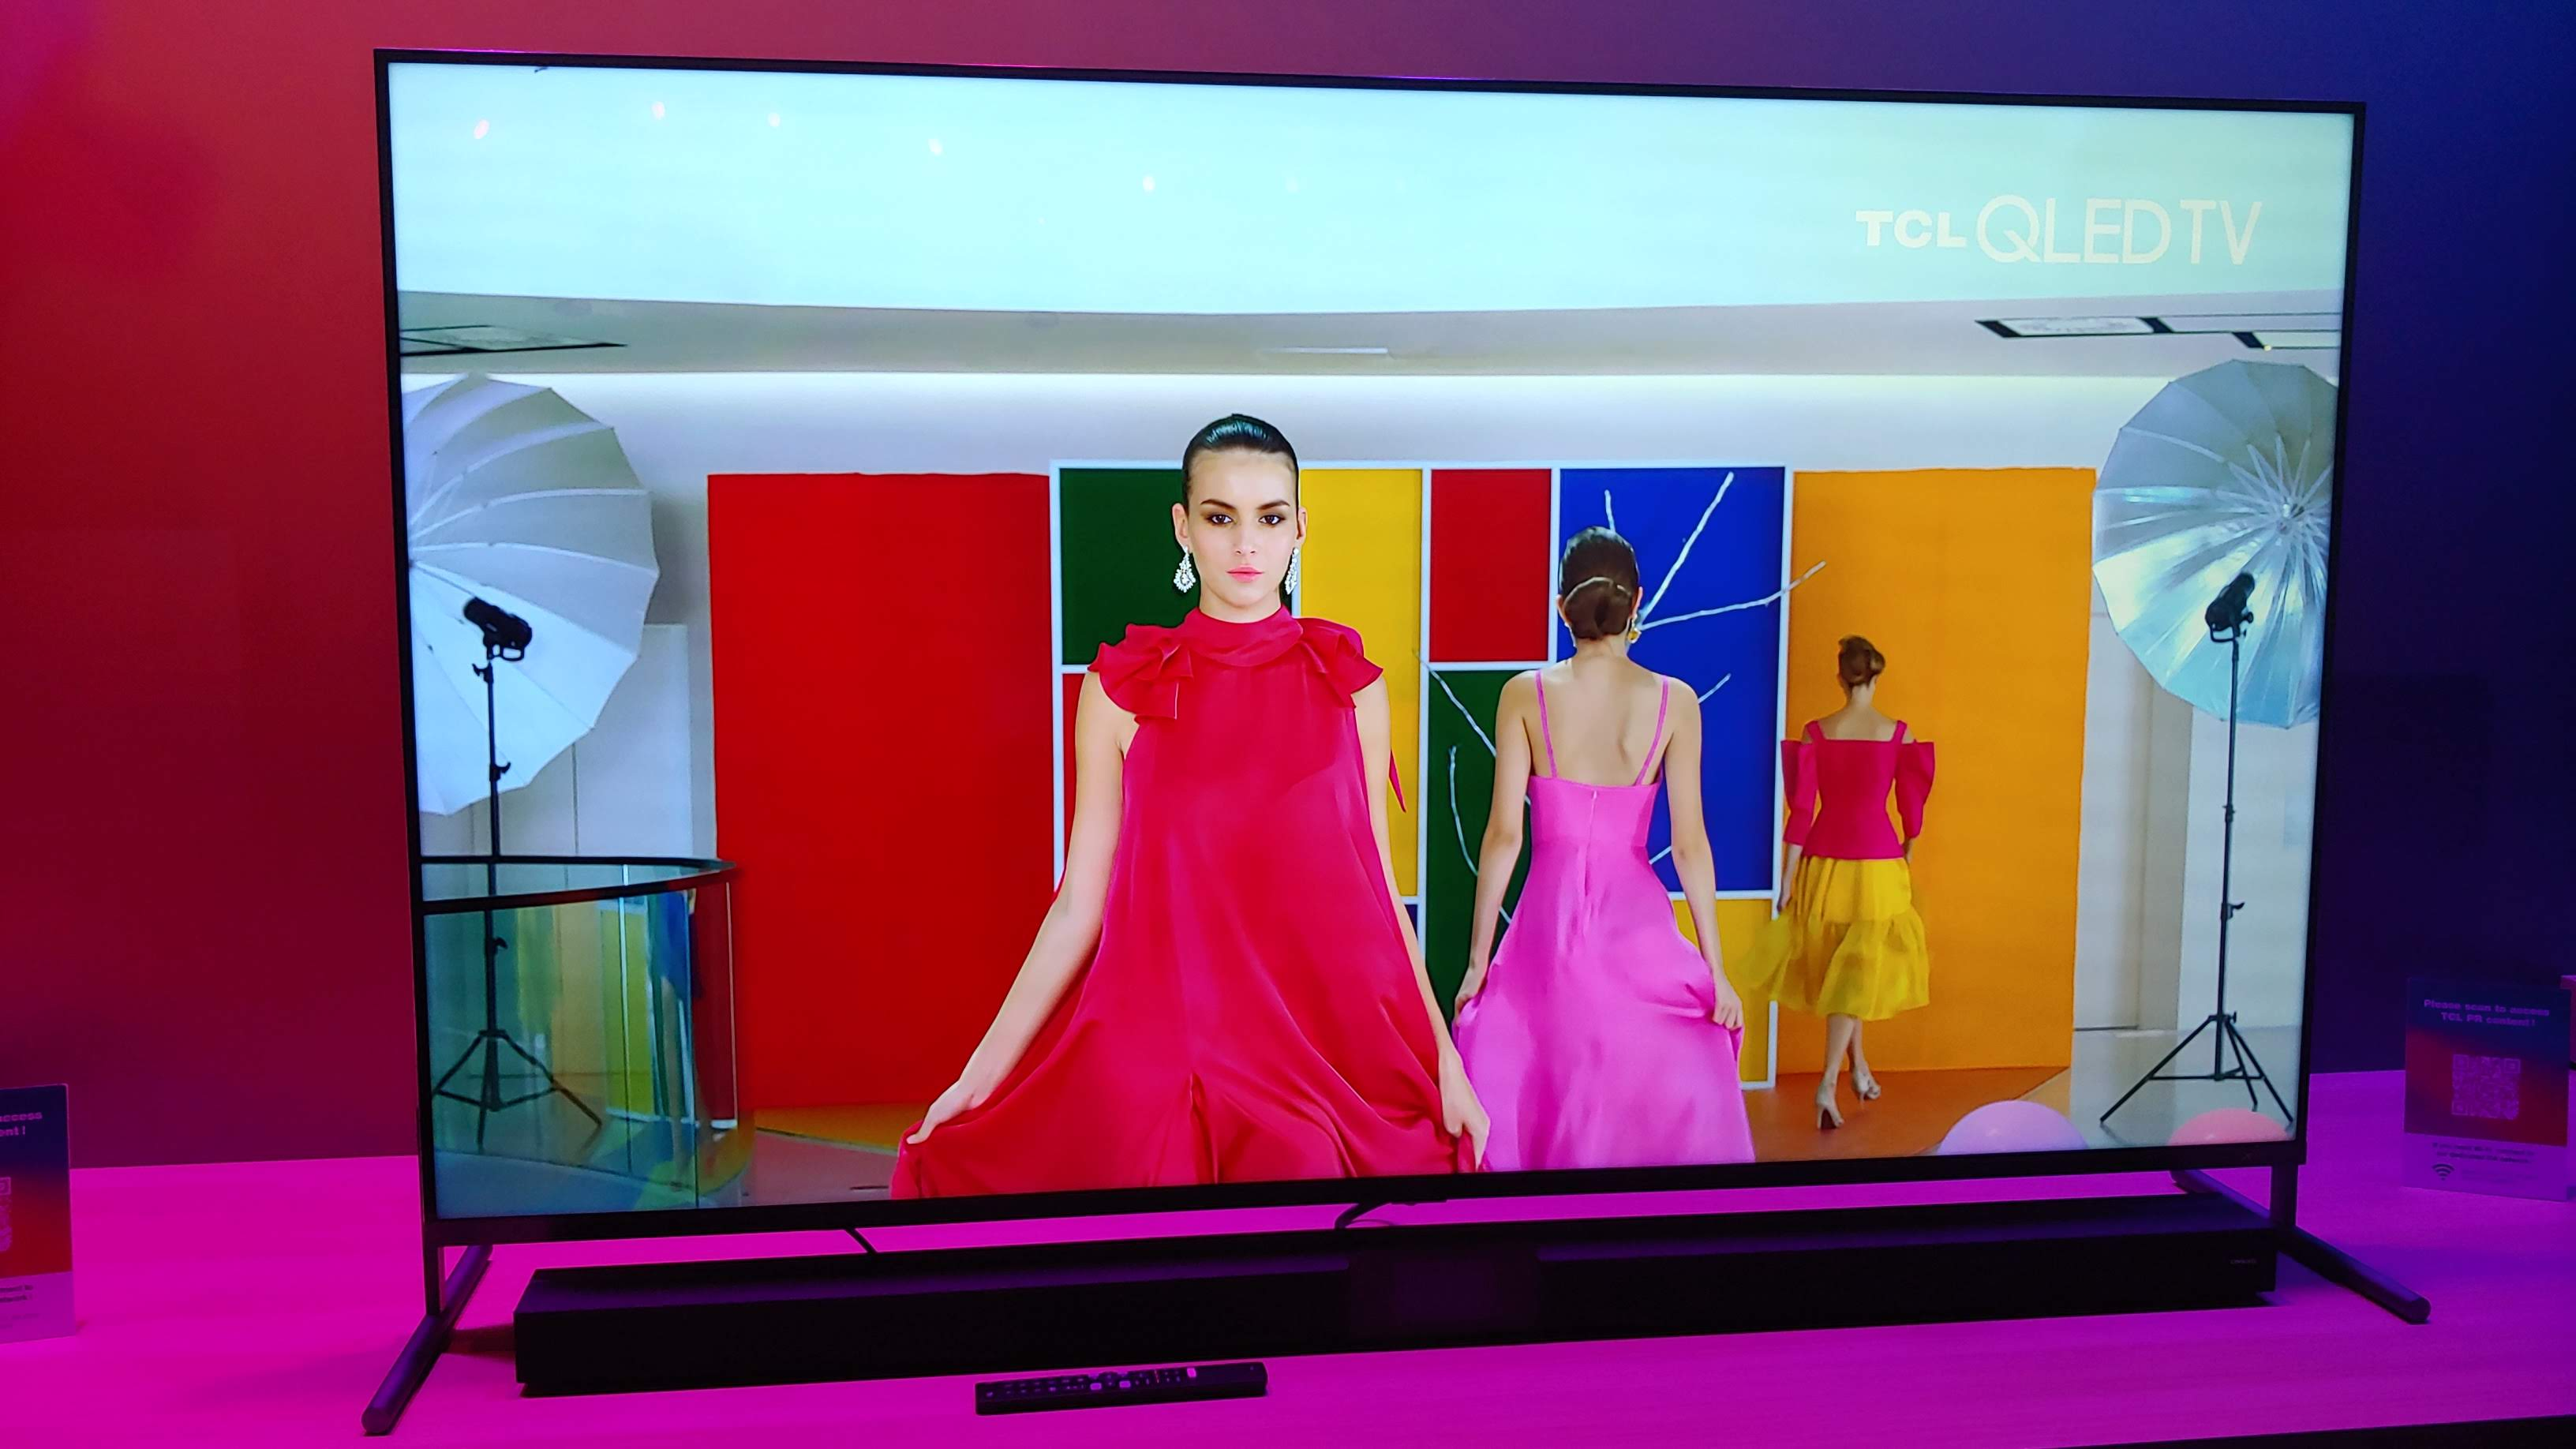 TCL has not one, but two new ridiculous 8K TVs at IFA this